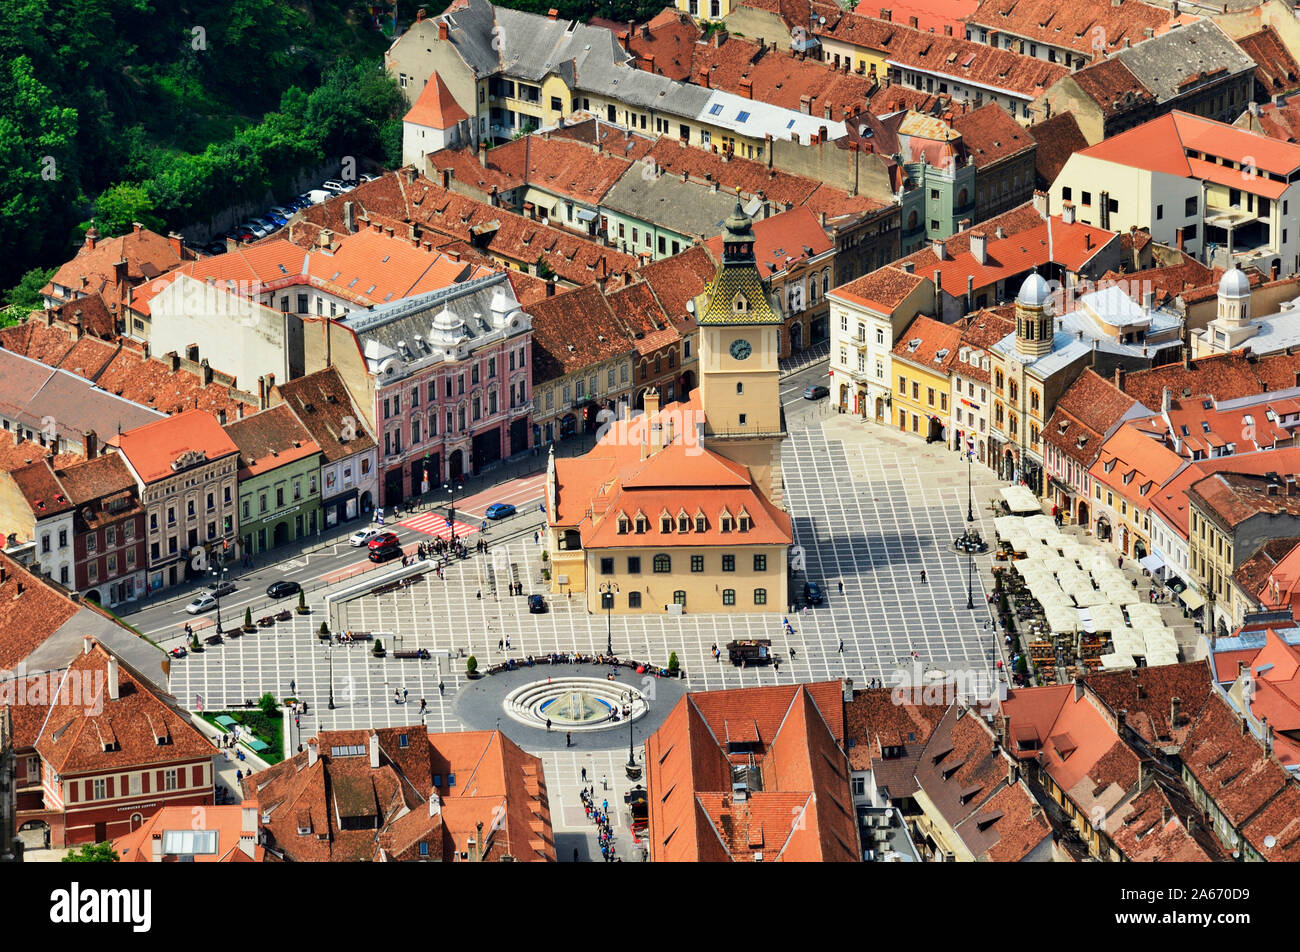 Piata Sfatului (Council Square) with the former Council House, built in 1420, and the old town. Brasov, Transylvania. Romania Stock Photo